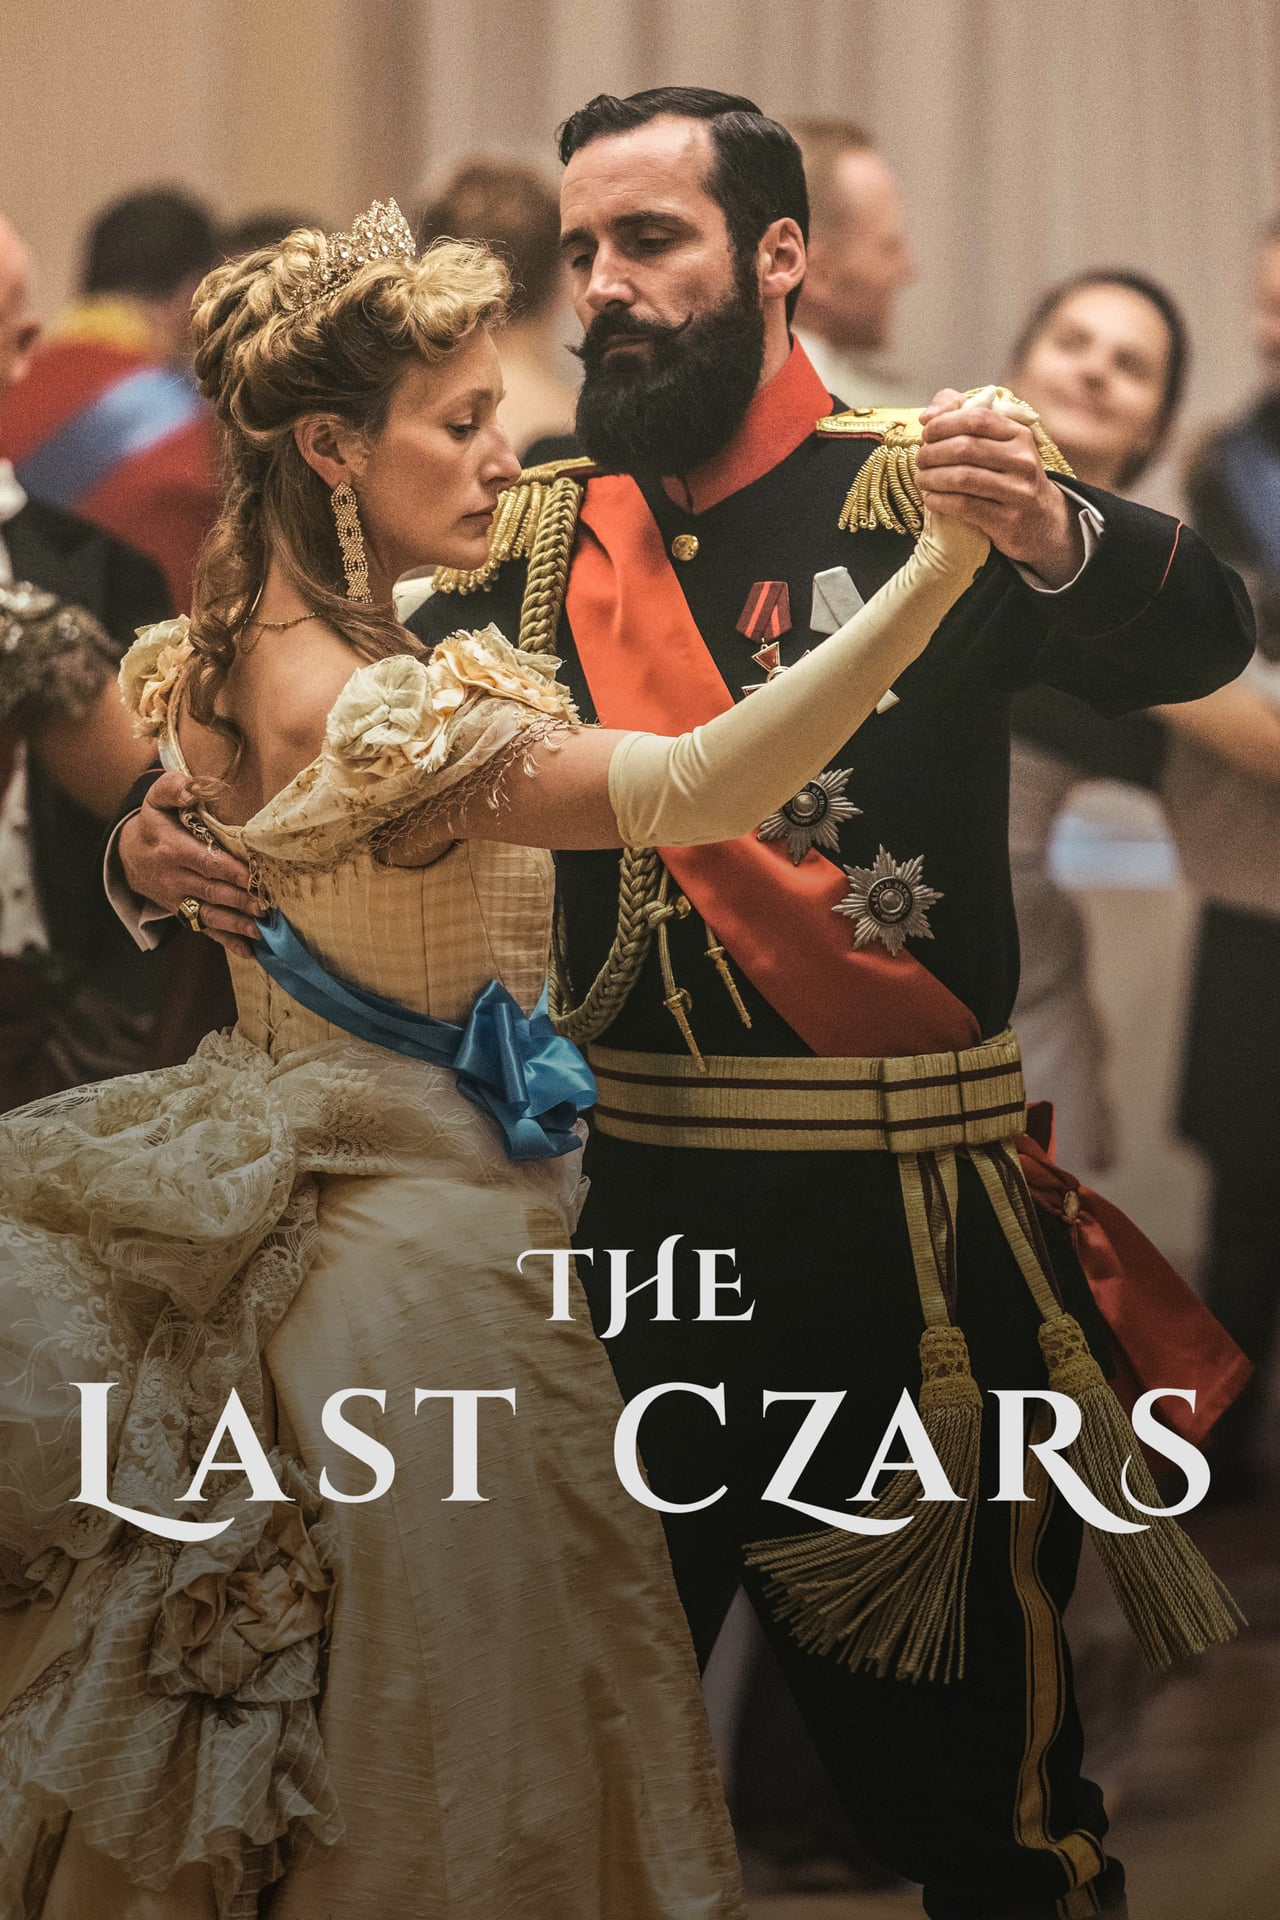 The Last Czars (season 1)